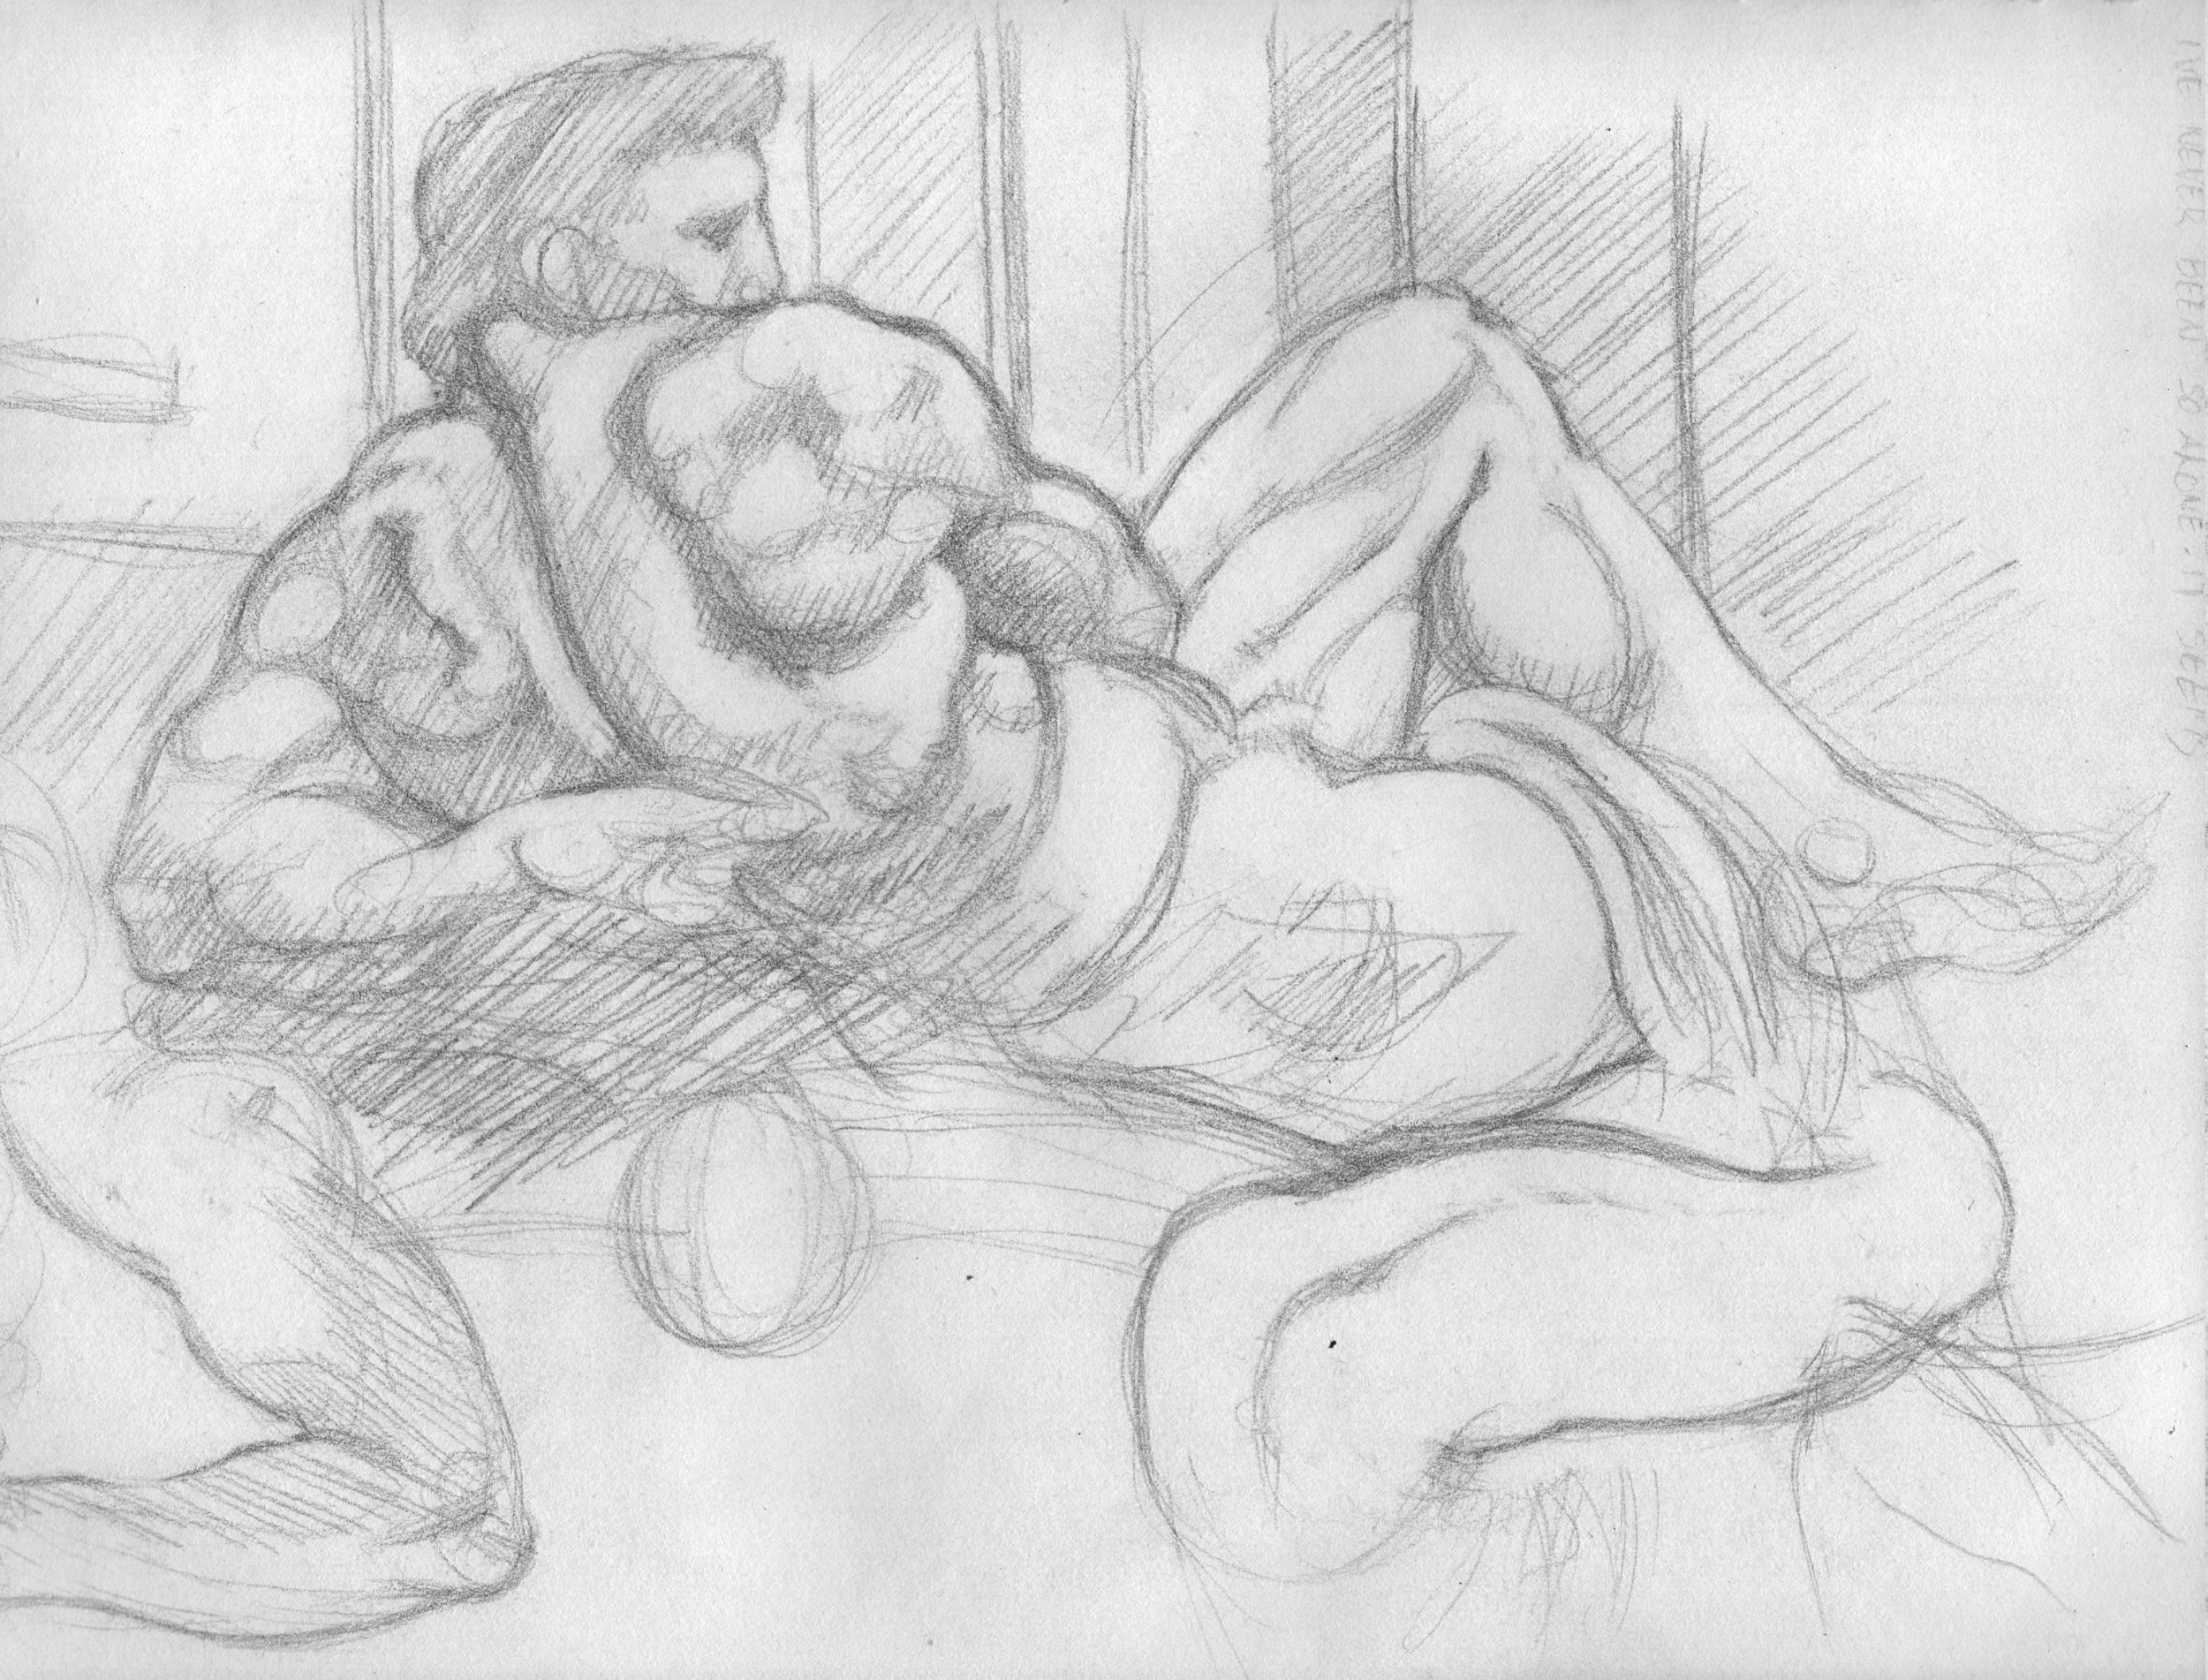 """Sketch of Michelangelo's """"Day"""" in the Medici Chapel. 1995"""